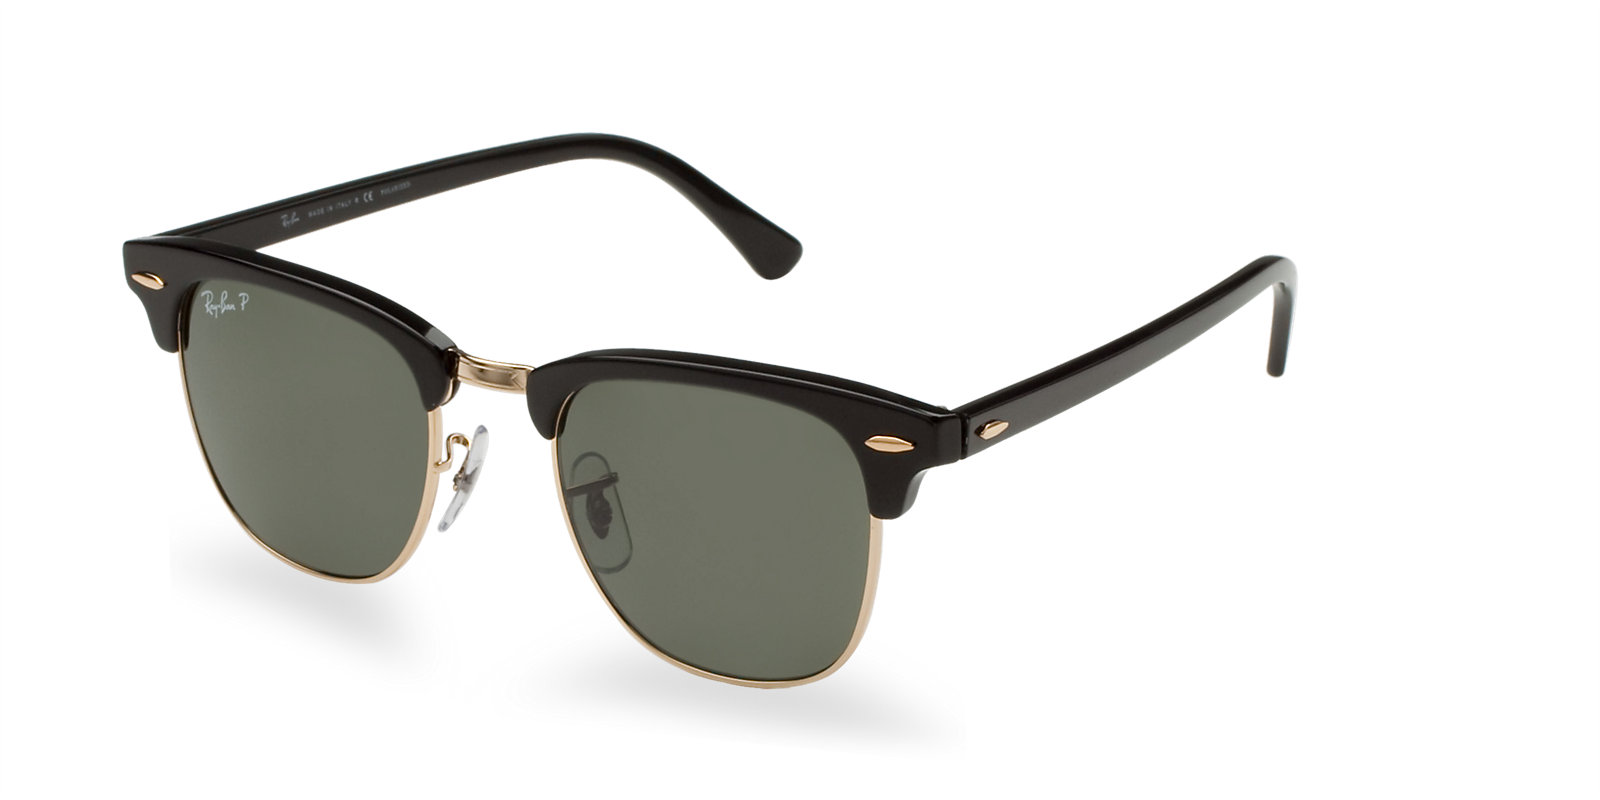 834876f64d Previous  Next. Previous  Next. RAY-BAN RB3016 901 58 POLARIZED BLACK  CLUBMASTER SUNGLASSES